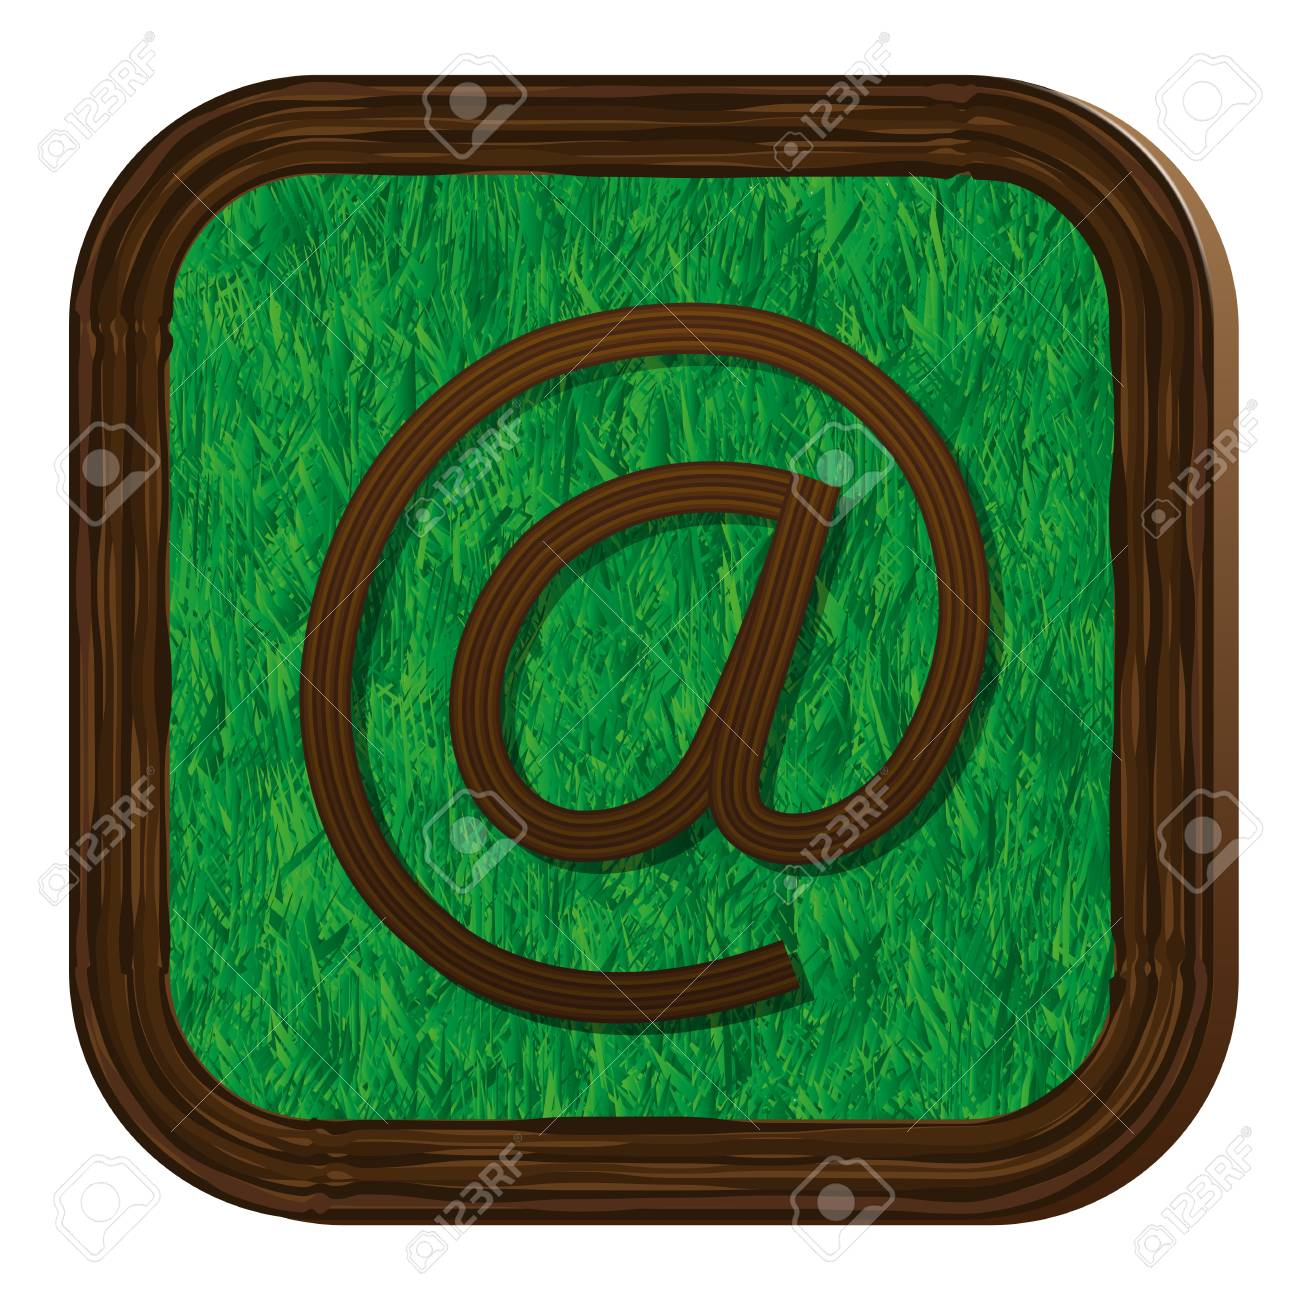 tree-herbal e-mail icon Stock Vector - 16463896